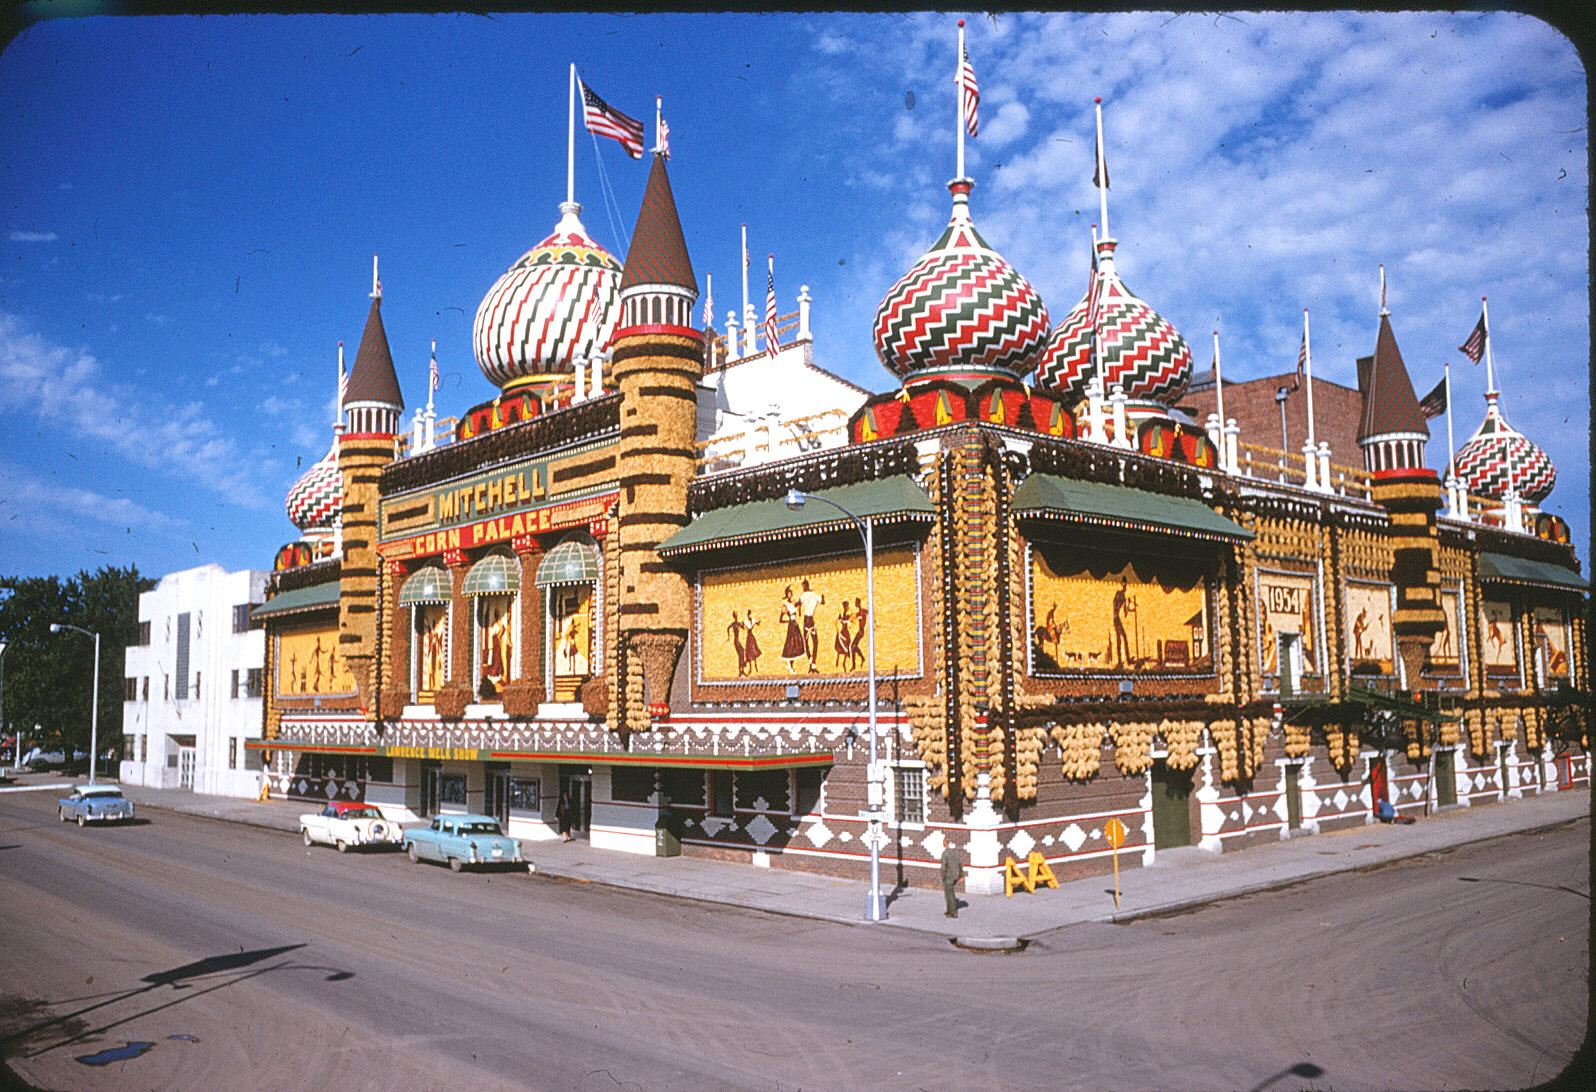 An image of the Corn Palace from 1954.